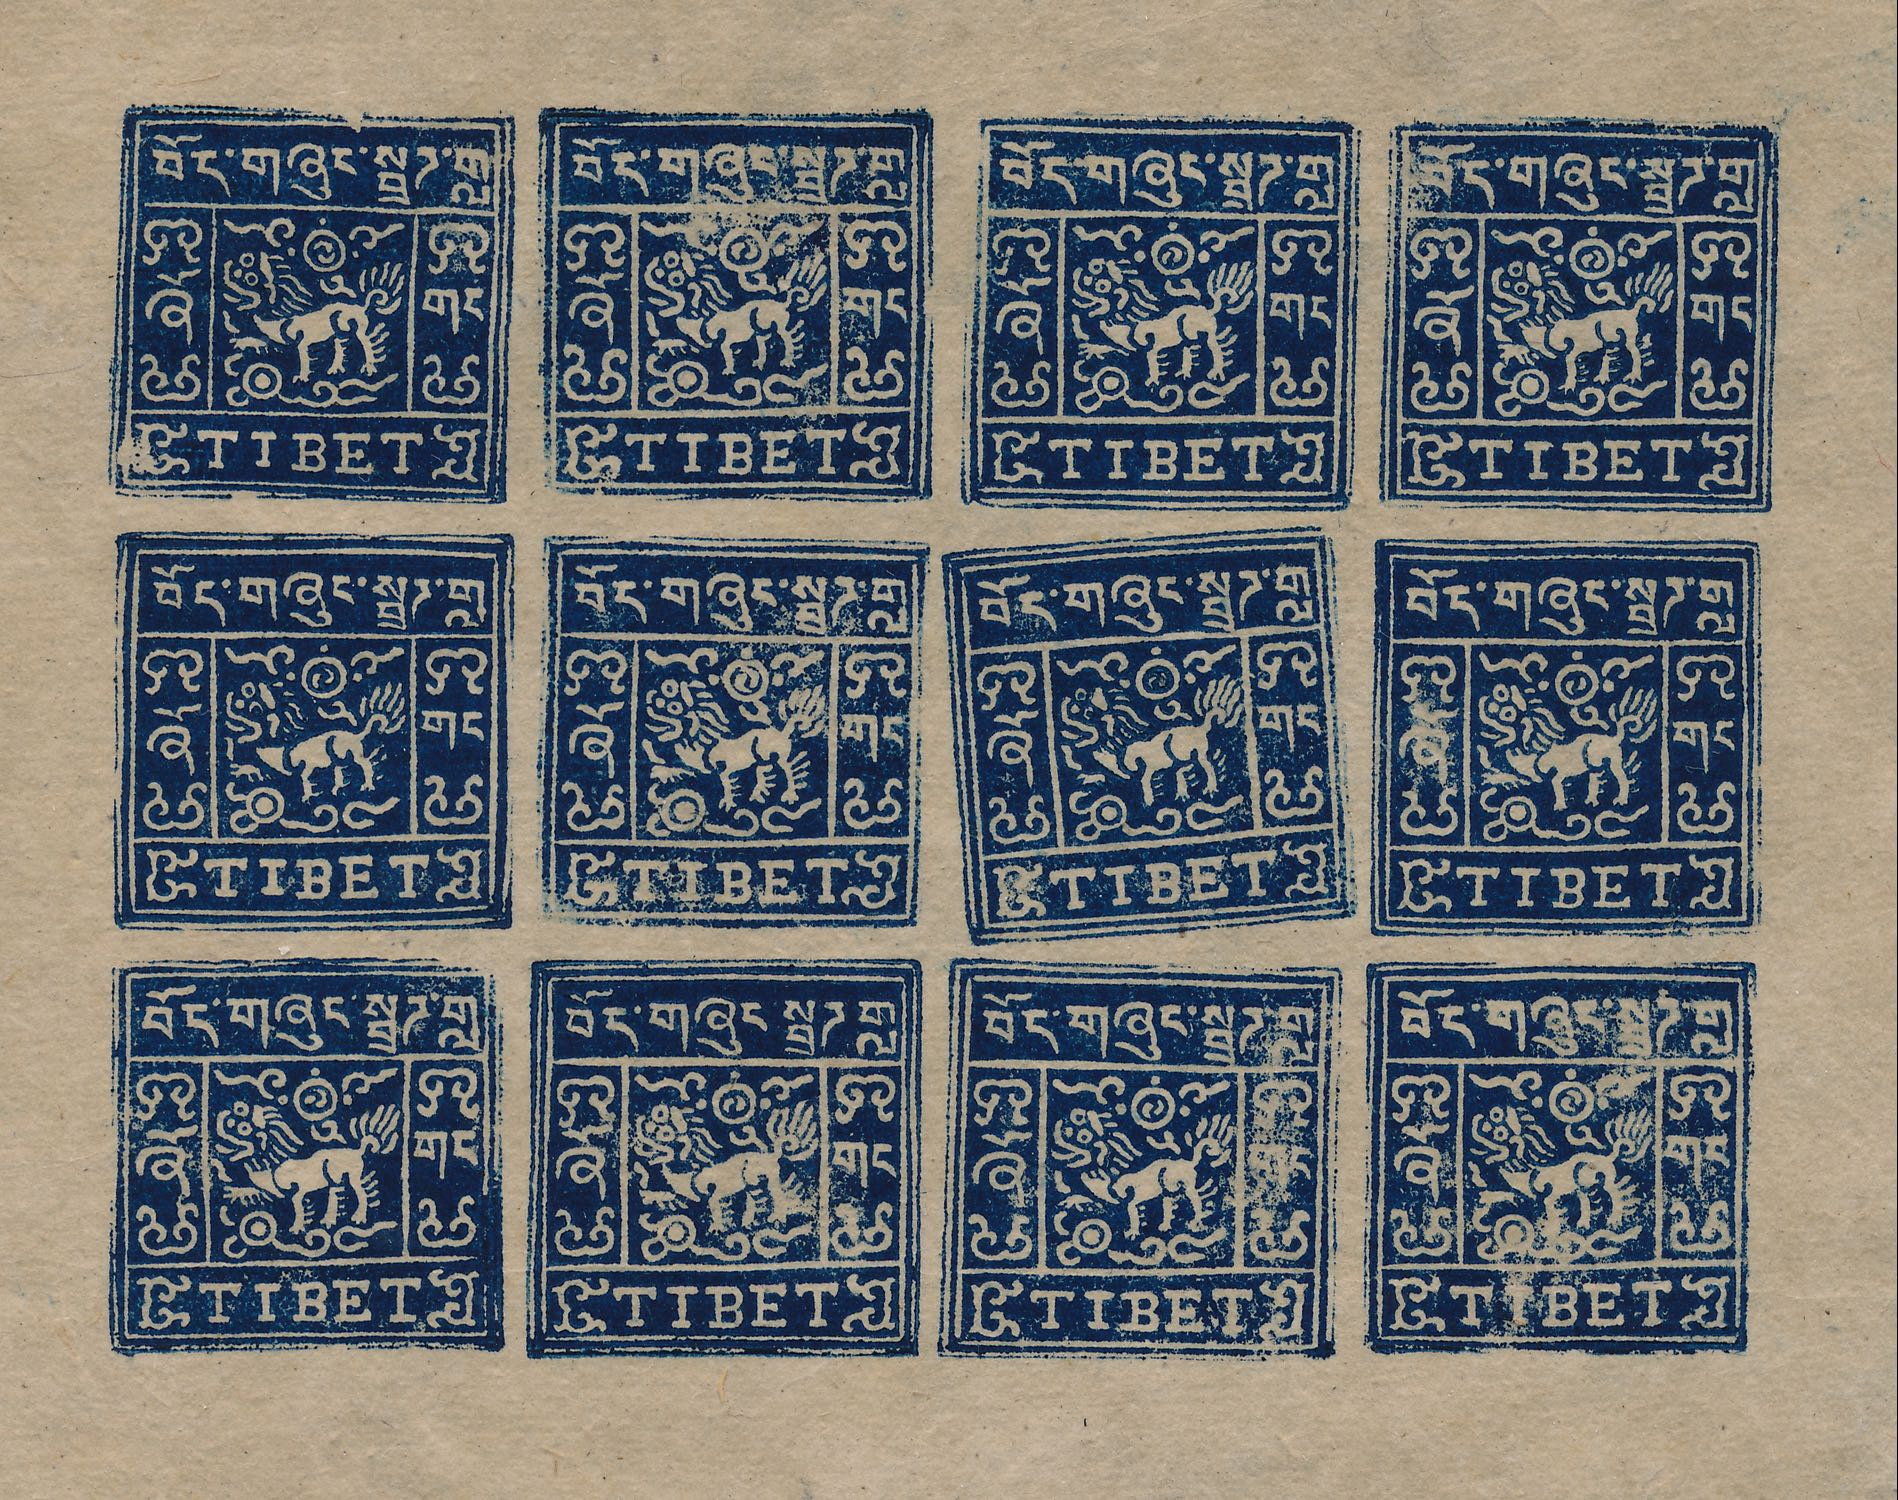 tibet_1933_2-3tr_genuine_sheet